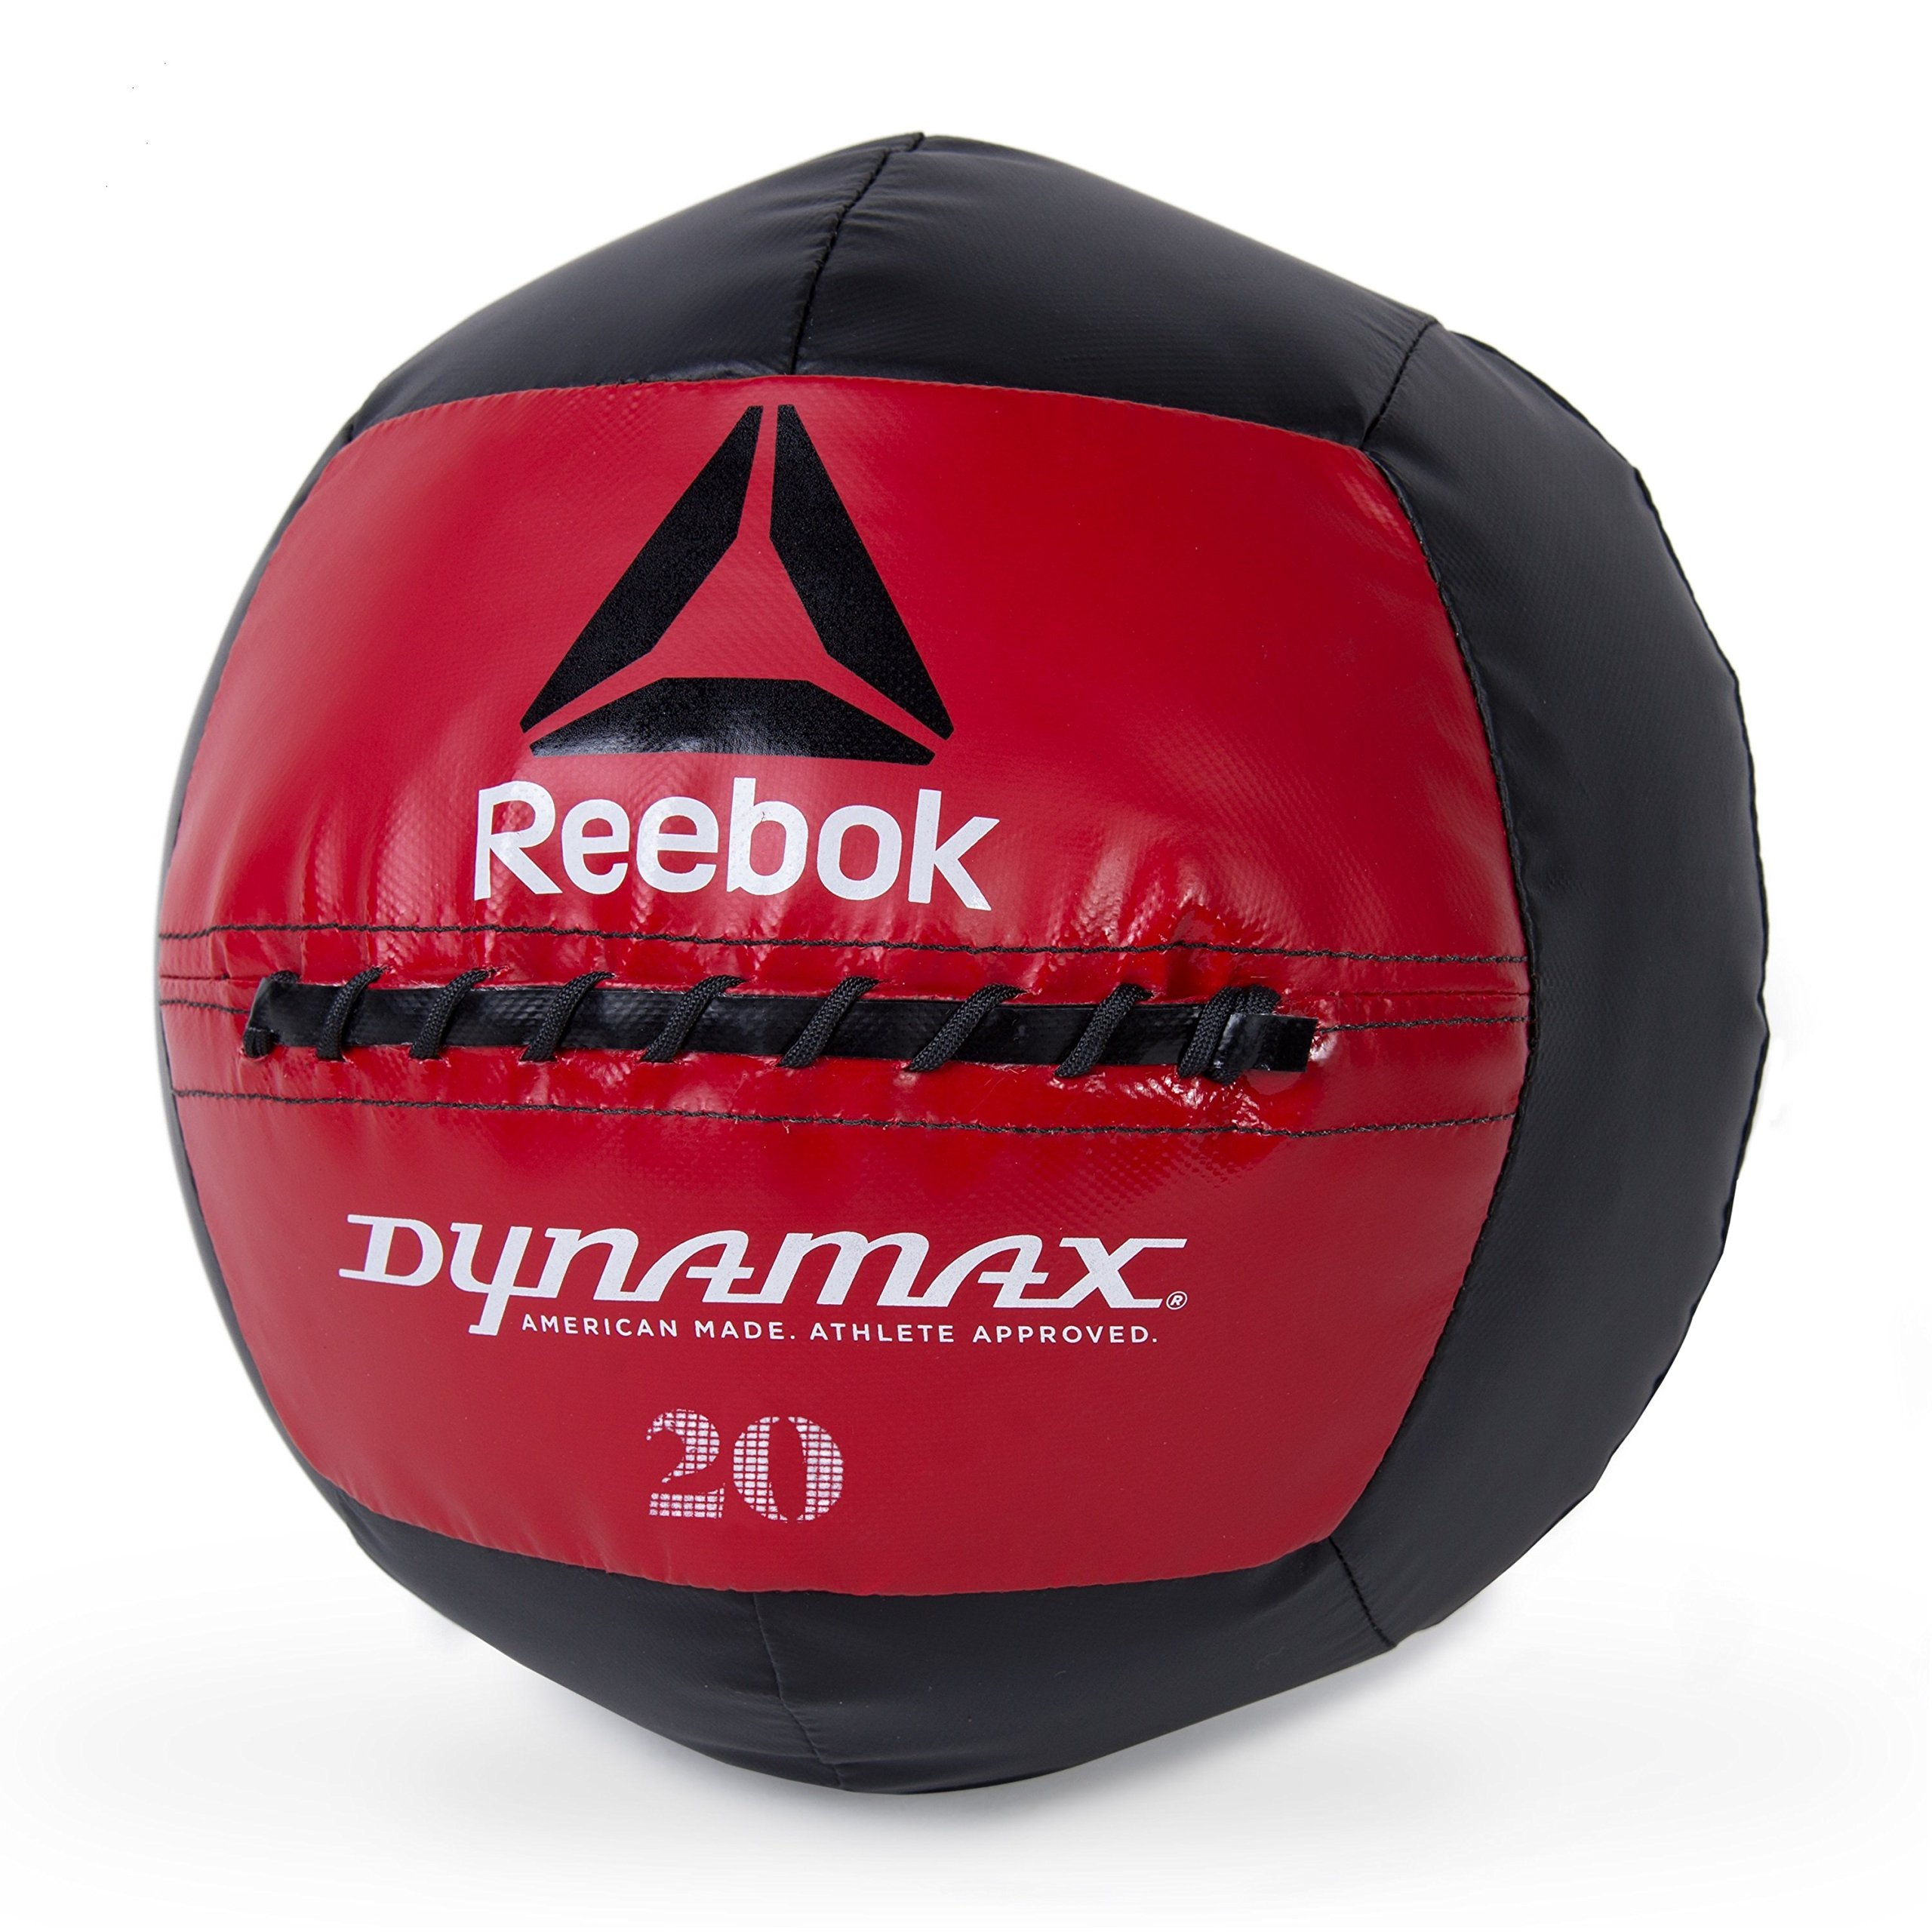 Reebok Soft-Shell Medicine Ball by Dynamax, 25 lbs